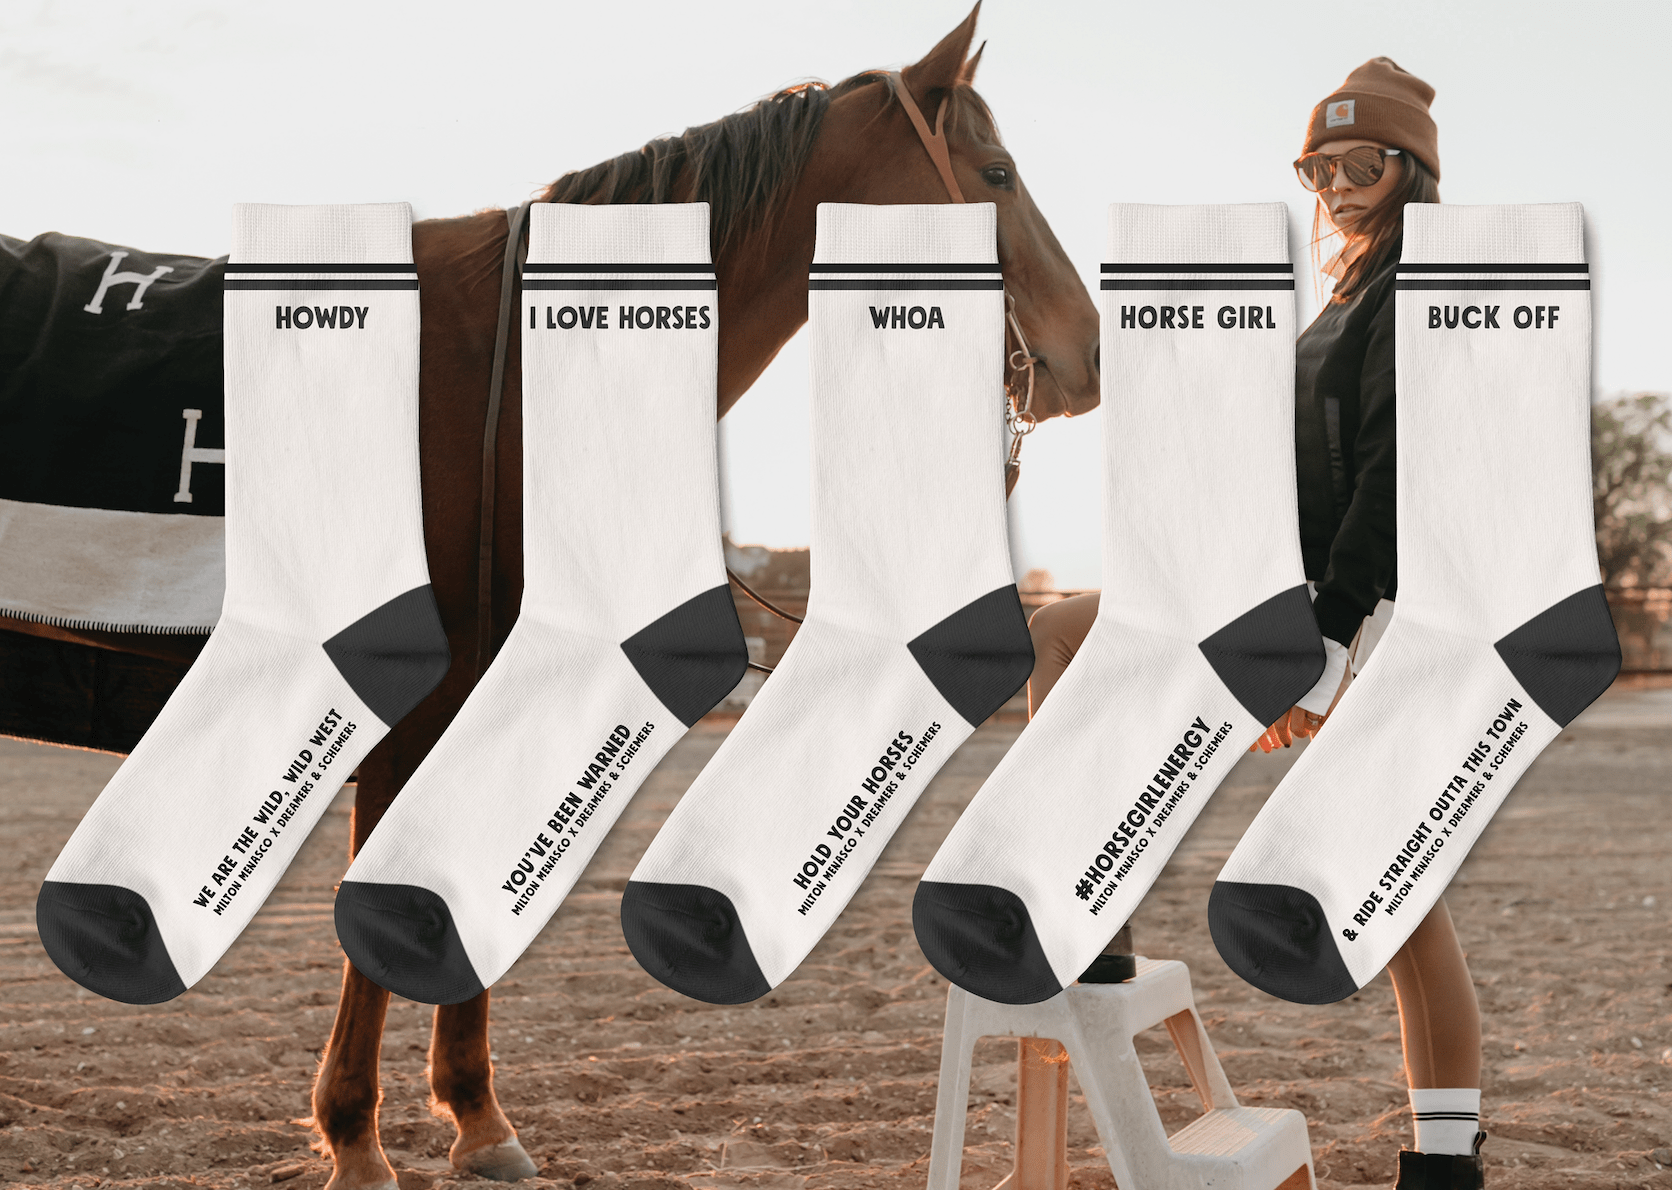 dreamers & schemers Crew Sock Milton Menasco X D&S Gift Pack equestrian boot socks boot socks thin socks riding socks pattern socks tall socks funny socks knee high socks horse socks horse show socks